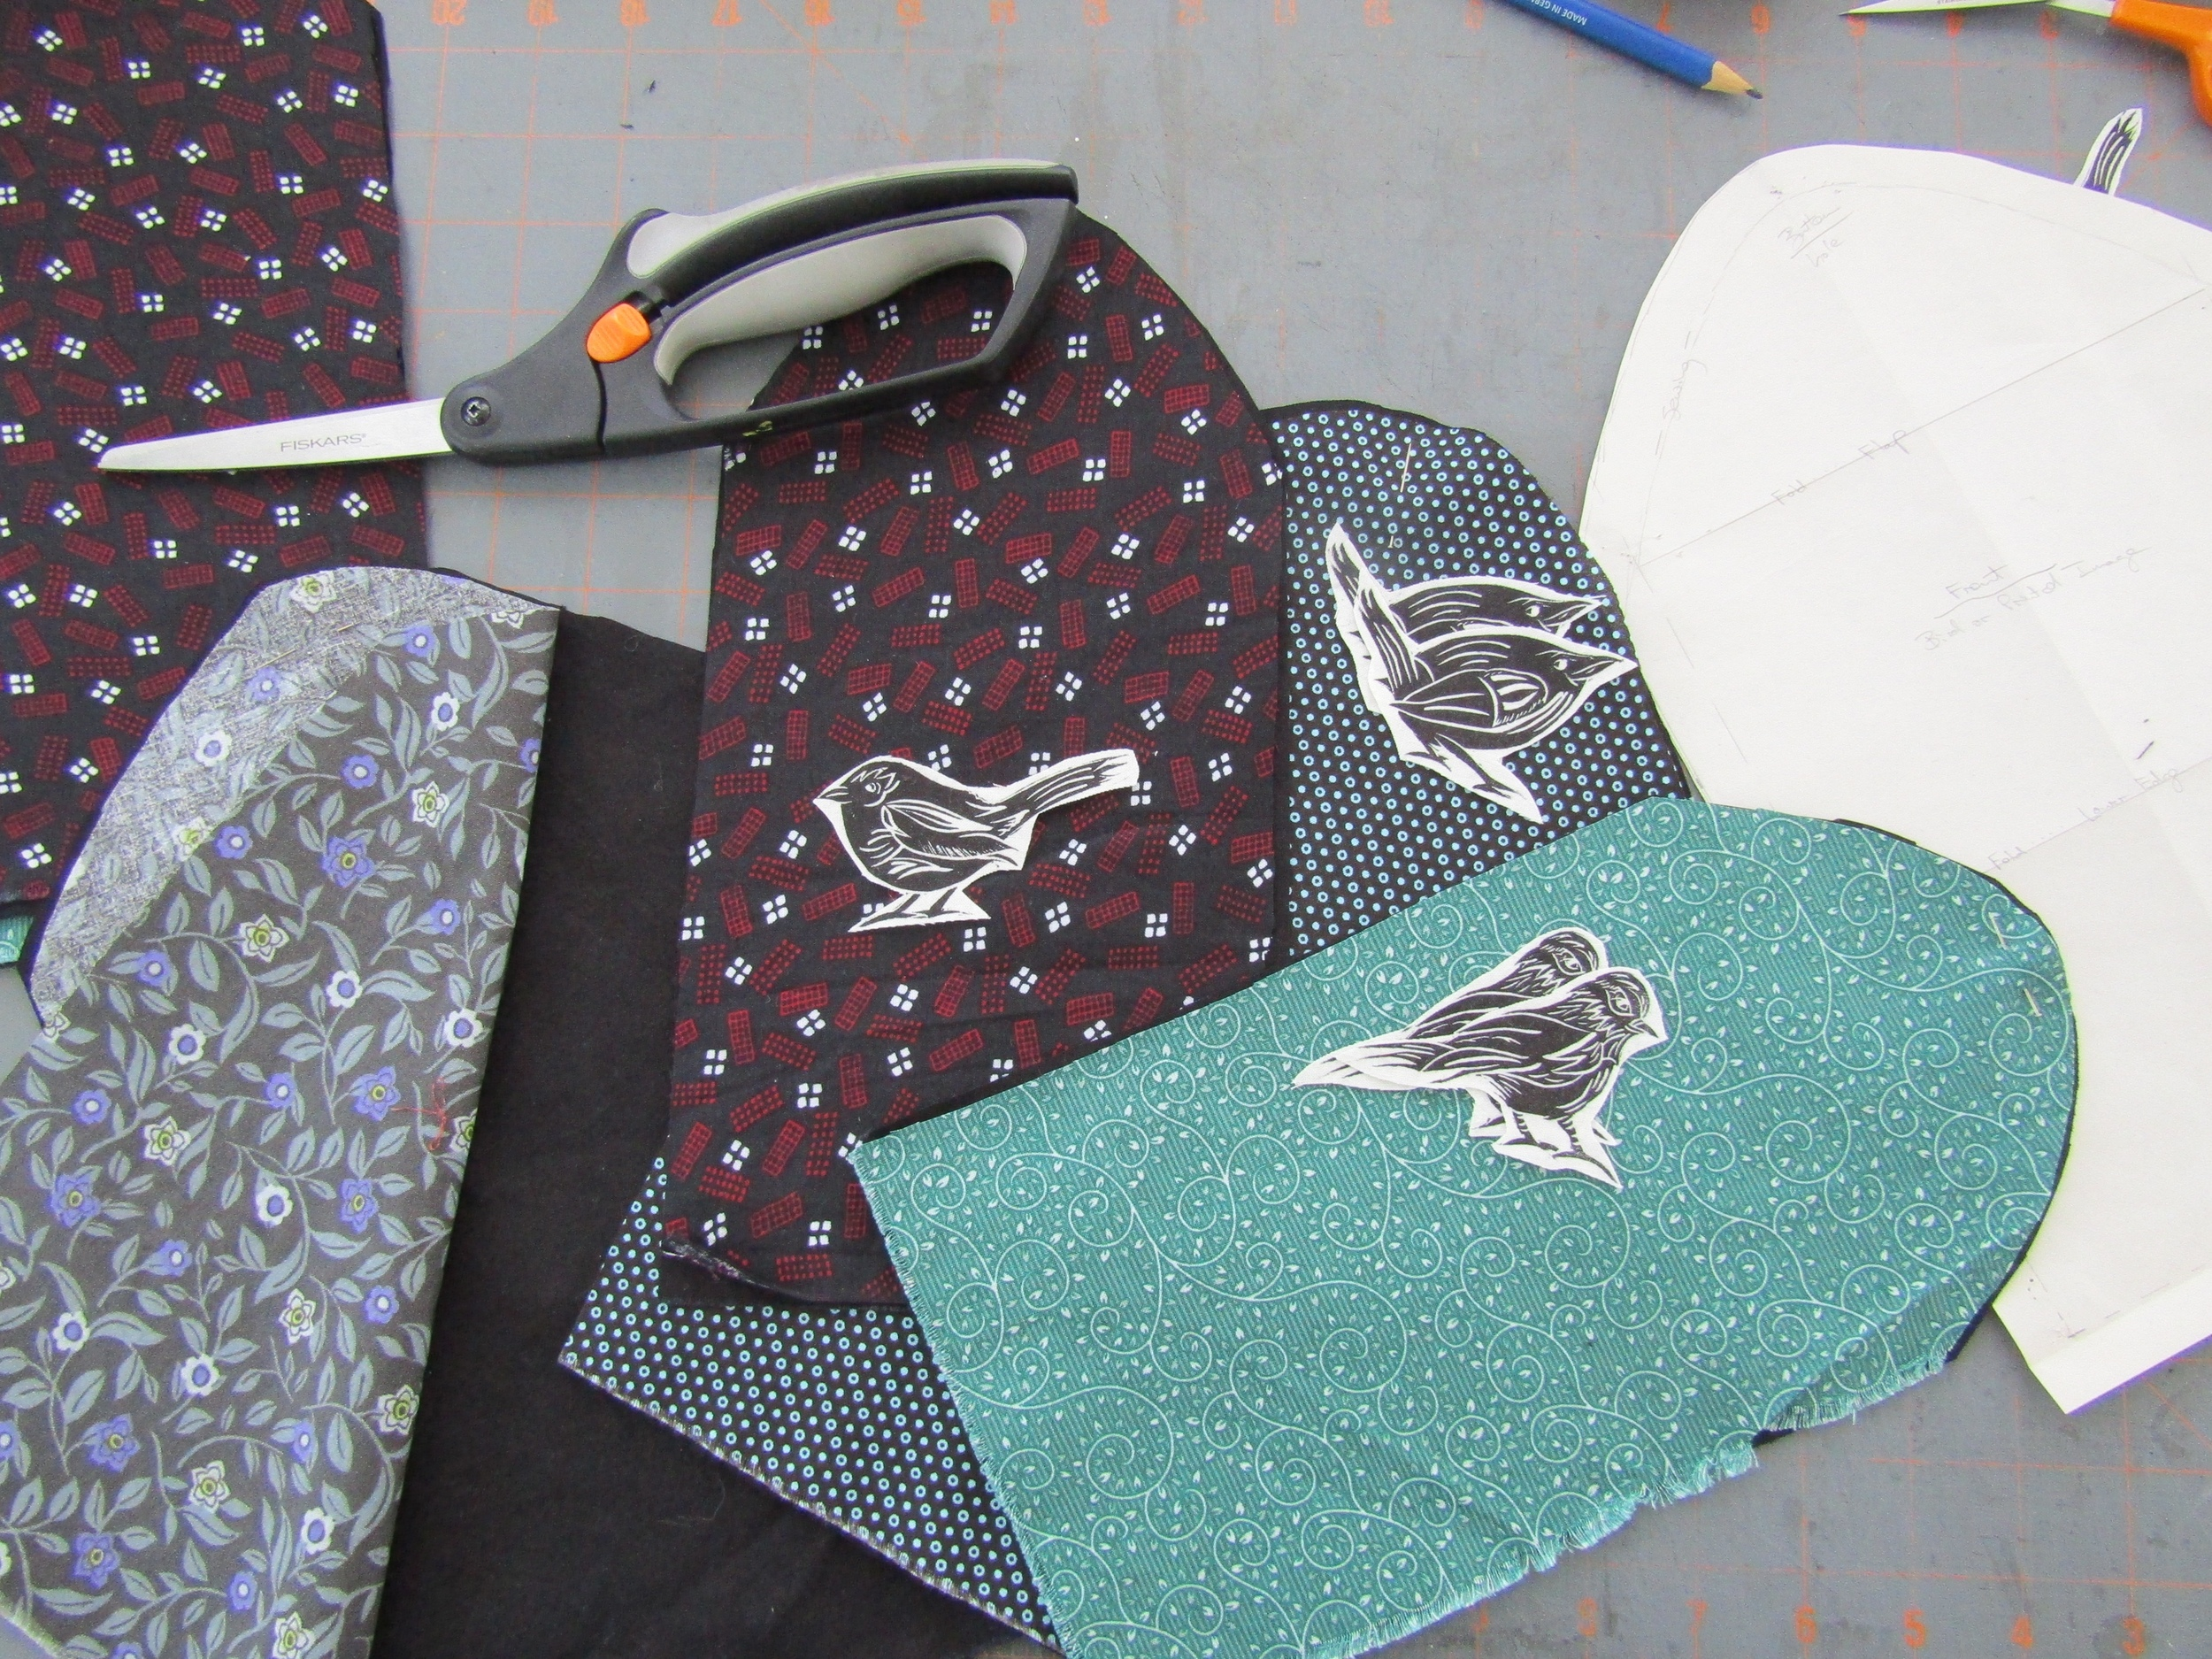 Various fabrics and birdies - working on multiples.